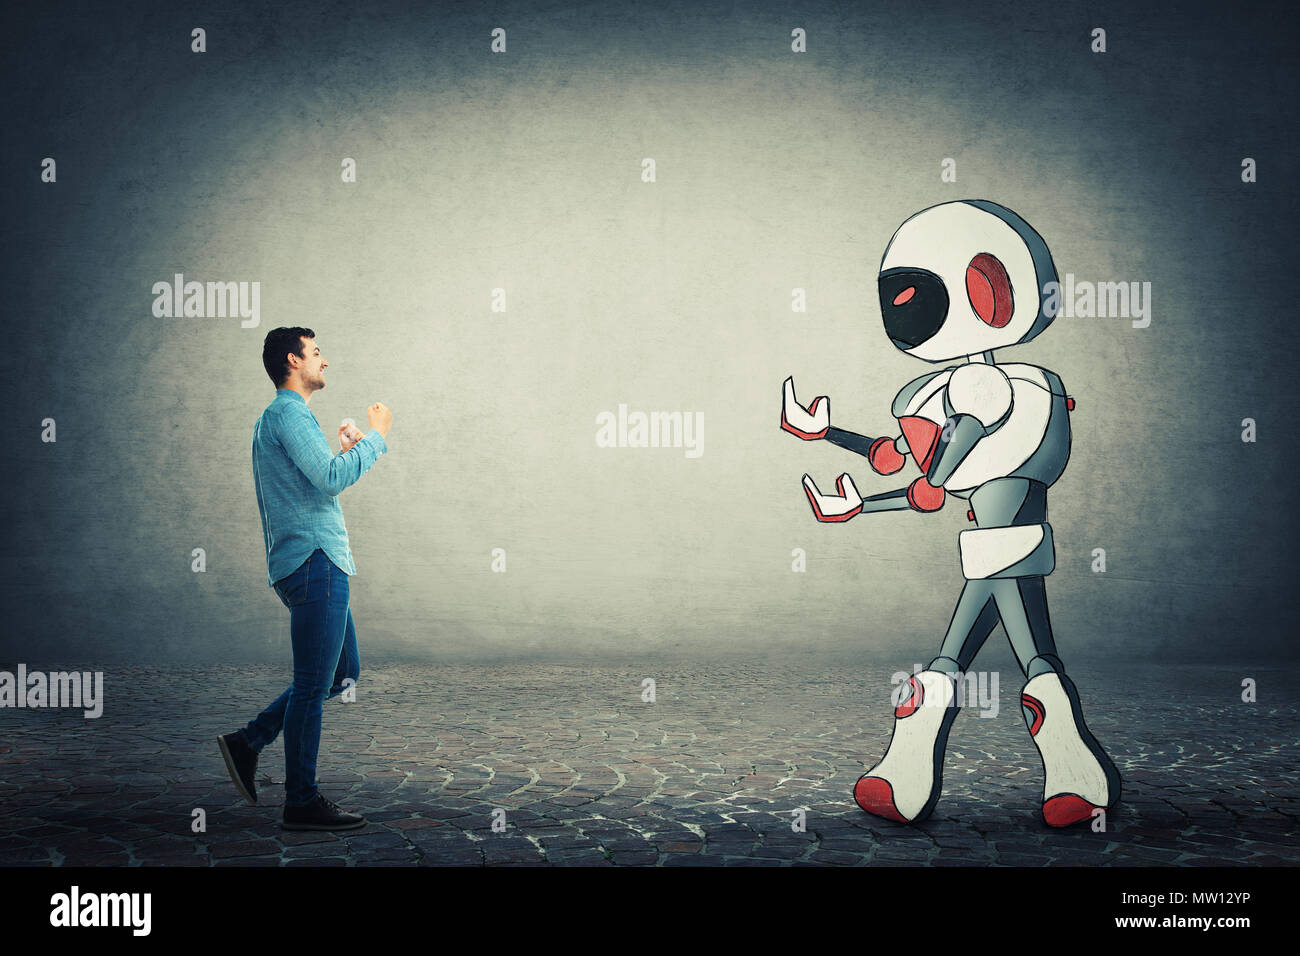 Young businessman holding fists ready to fight against robot. Rivalry between human and technology. Danger of losing the job, replacing the human work - Stock Image